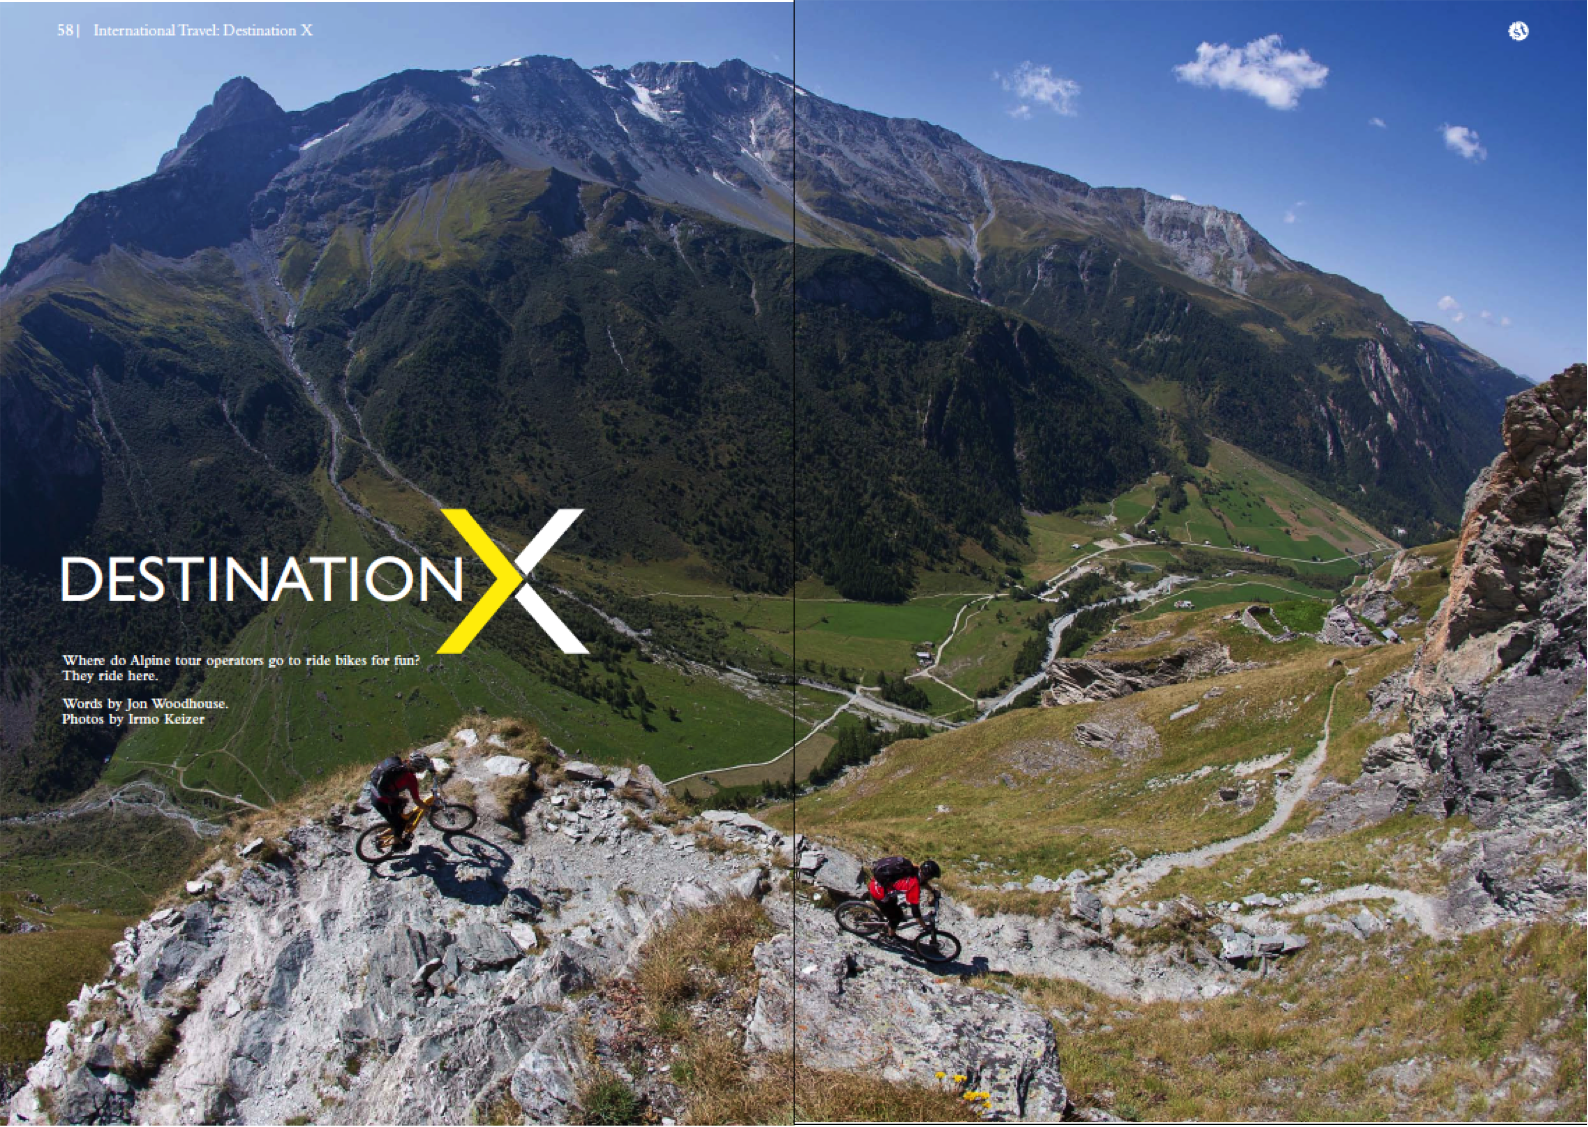 STW_Destination_X_article_Issue70